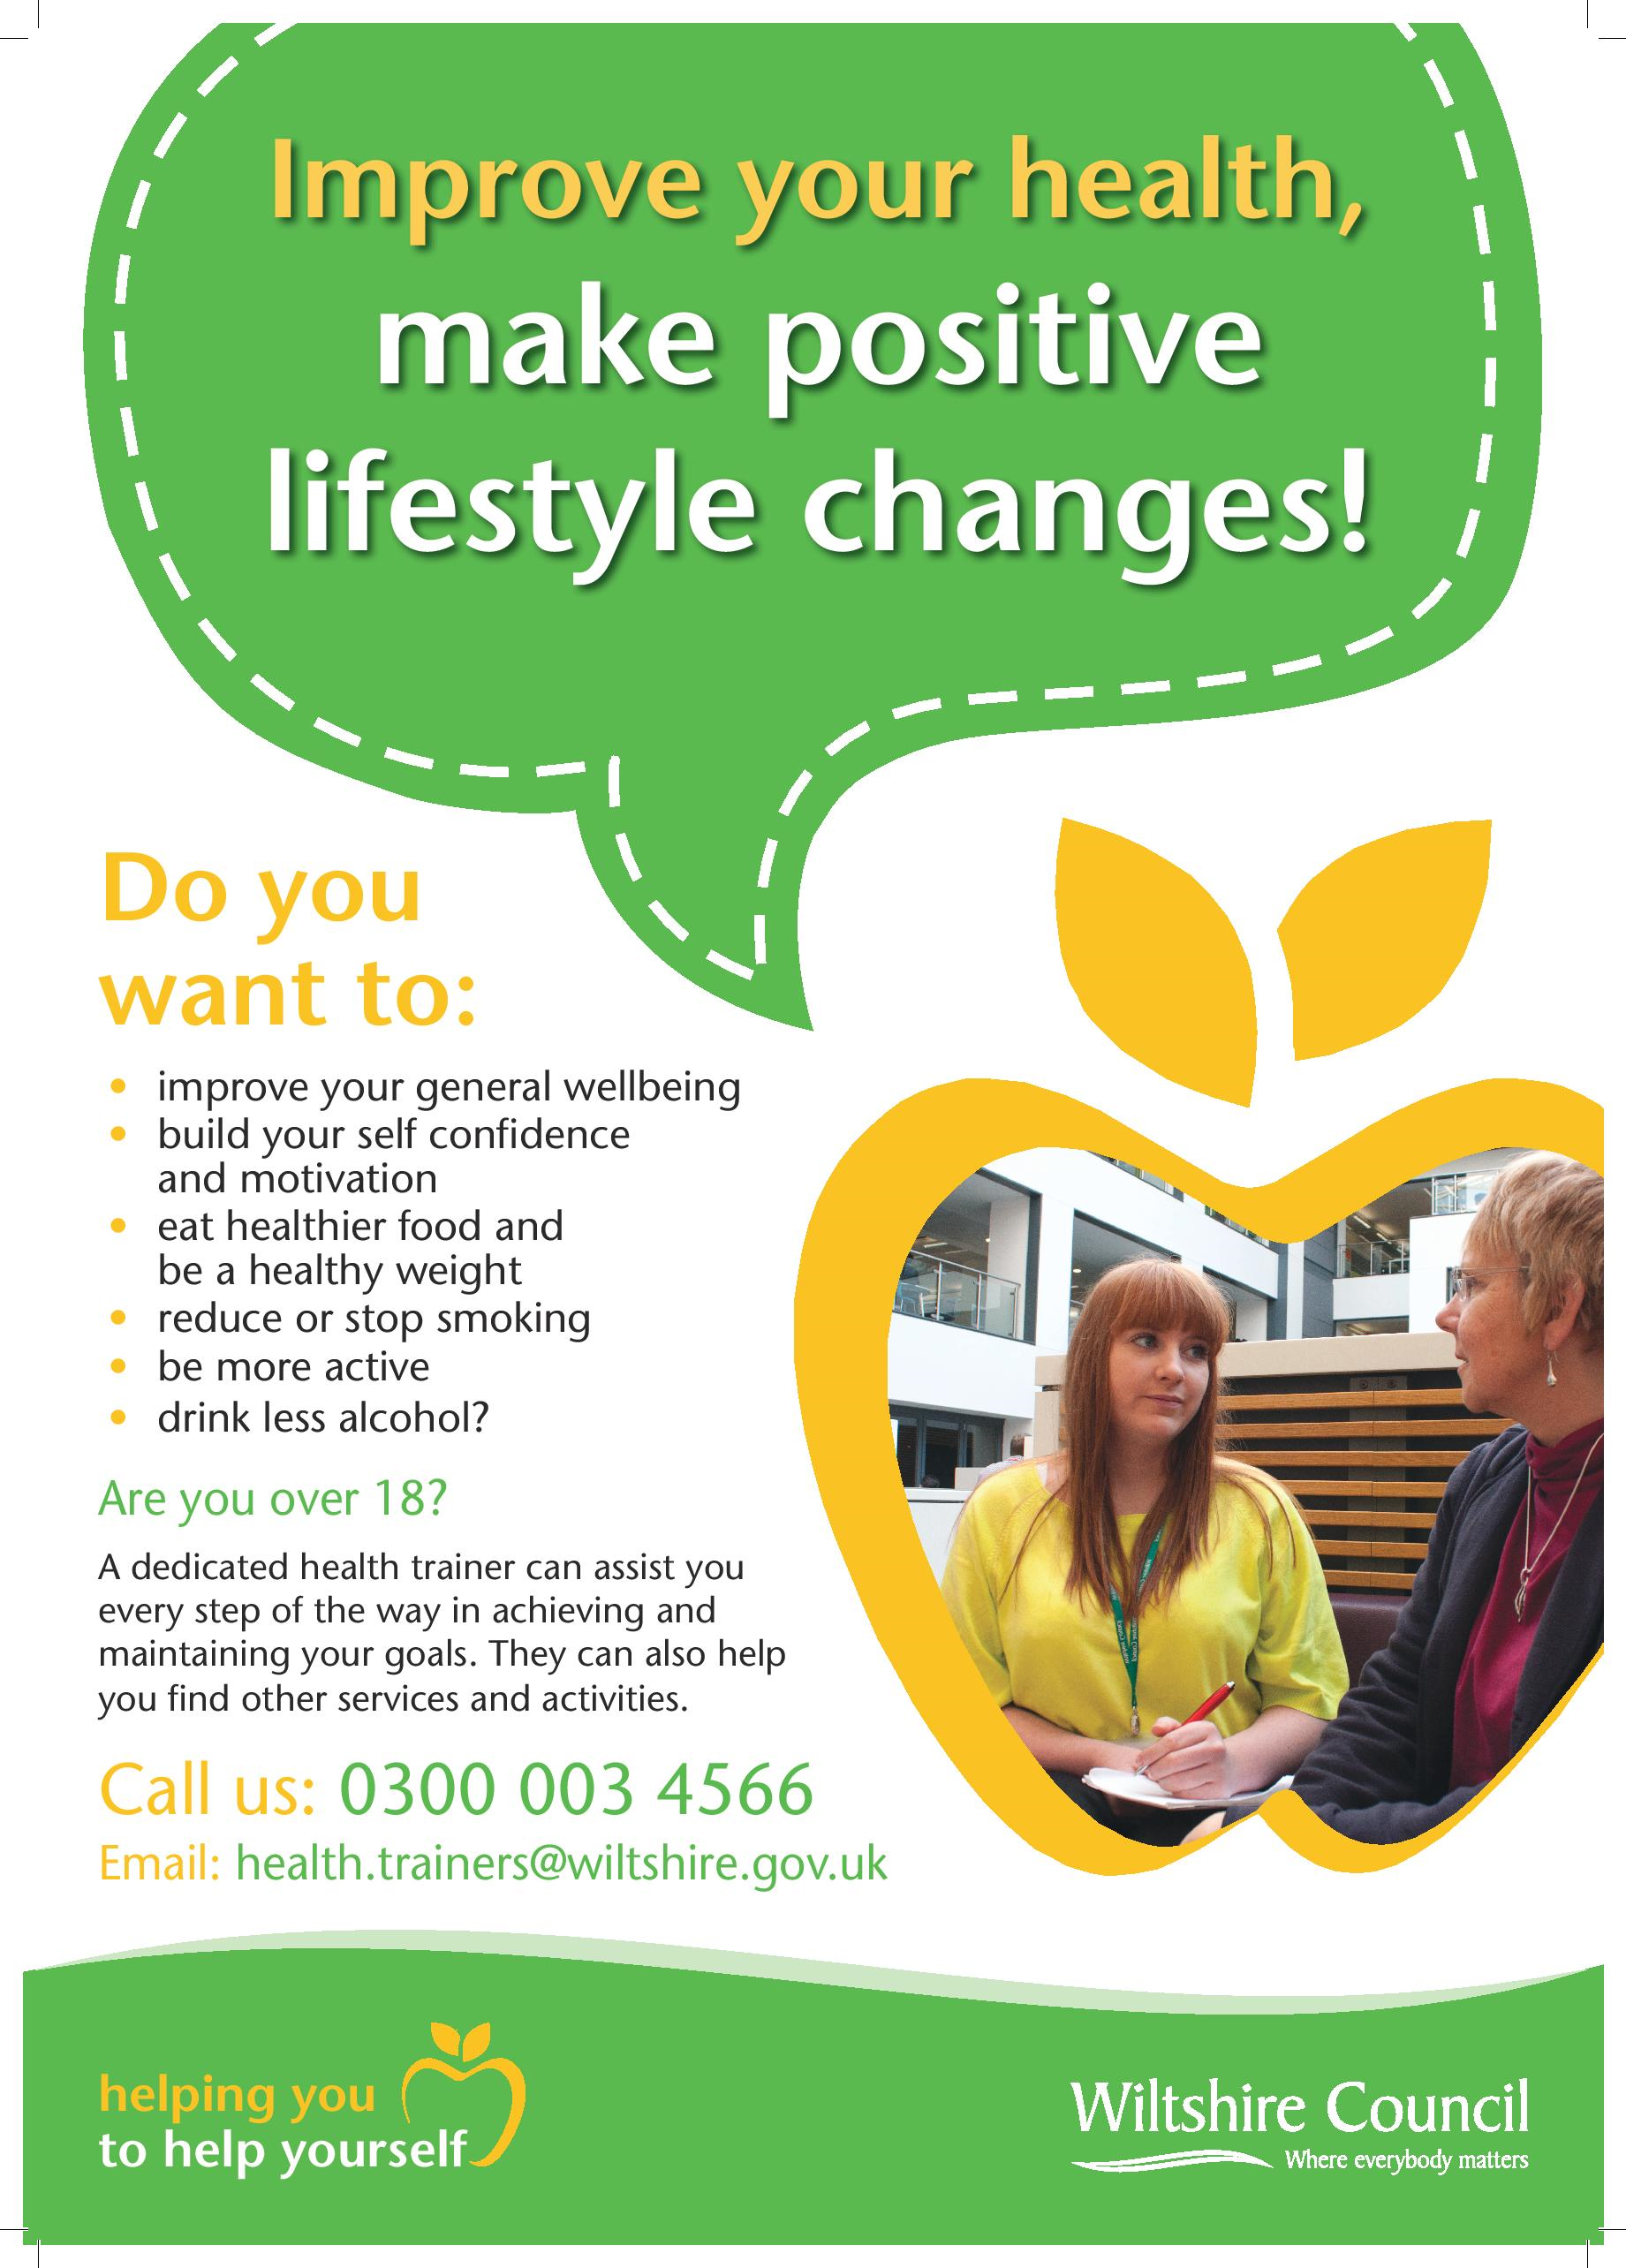 a09c9ad03 The Lodge Surgery - Health Trainers & Physiotherapy Self-Referral